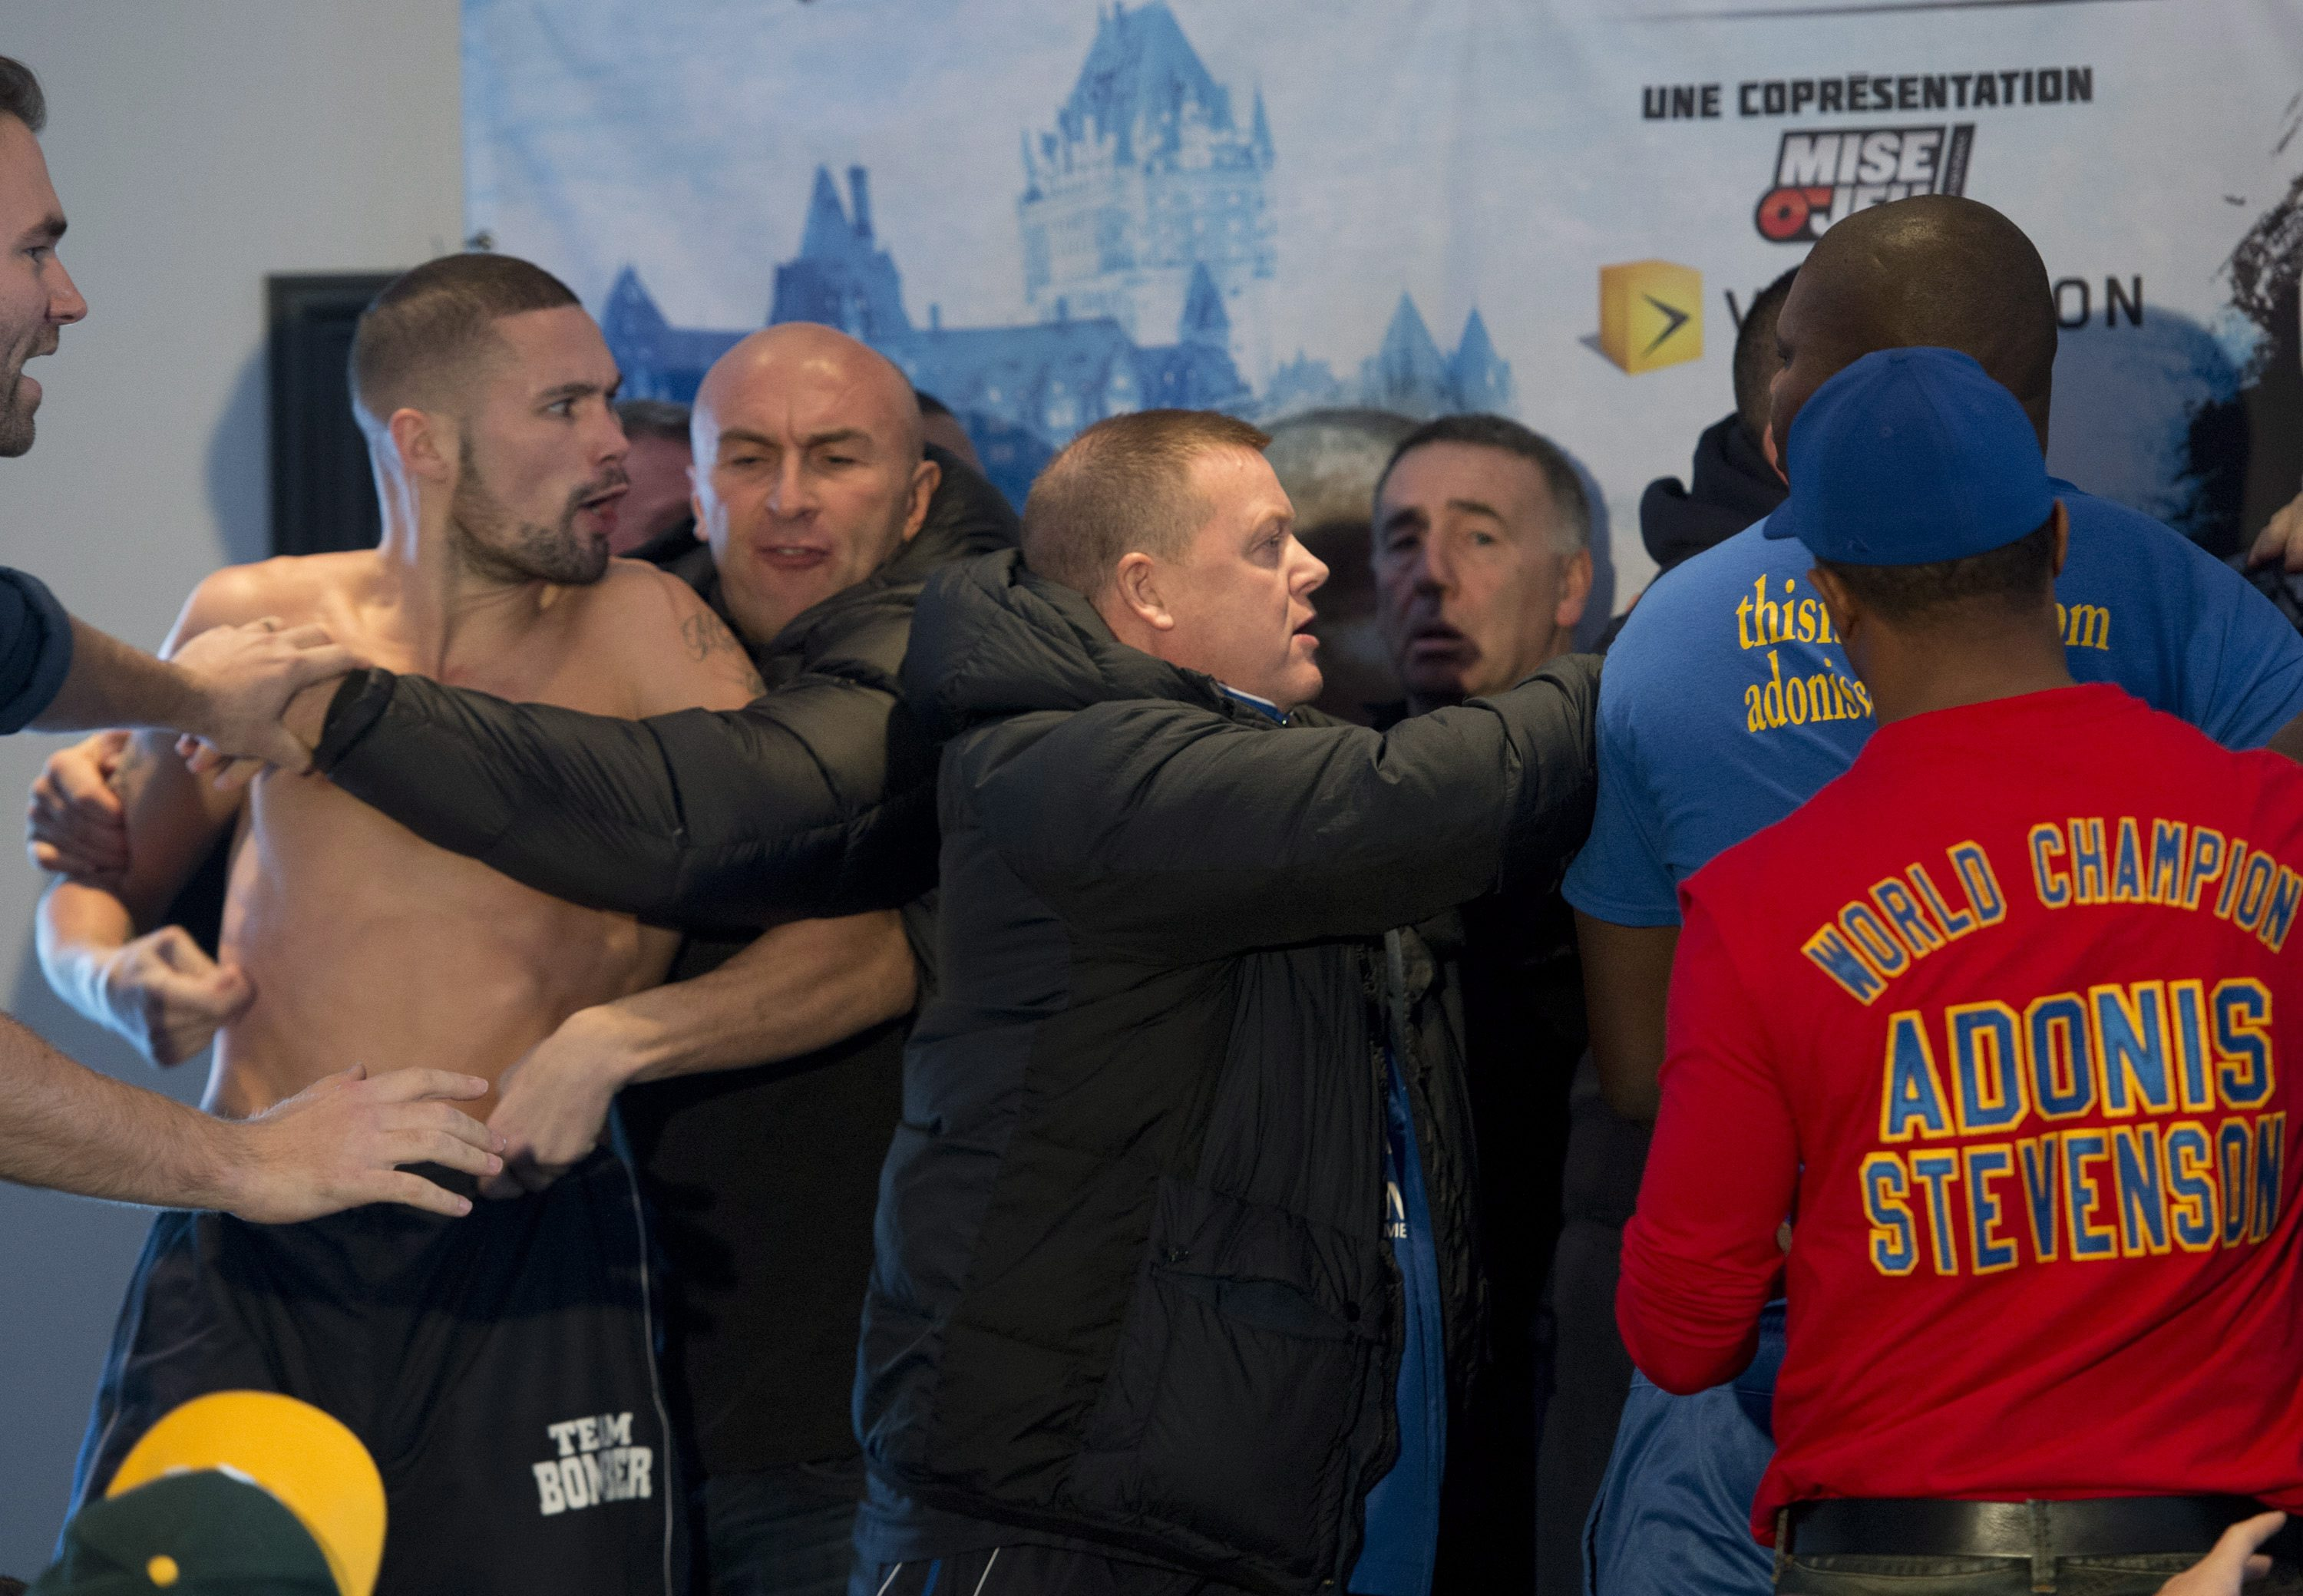 WBC light heavyweight champion Adonis Stevenson, hidden at right, and challenger Tony Bellew, left,, of England, are separated after butting heads during their weigh in Friday, Nov. 29, 2013 in Quebec City. The pair are scheduled to step in to the ring on Saturday, for Stevenson's WBC title